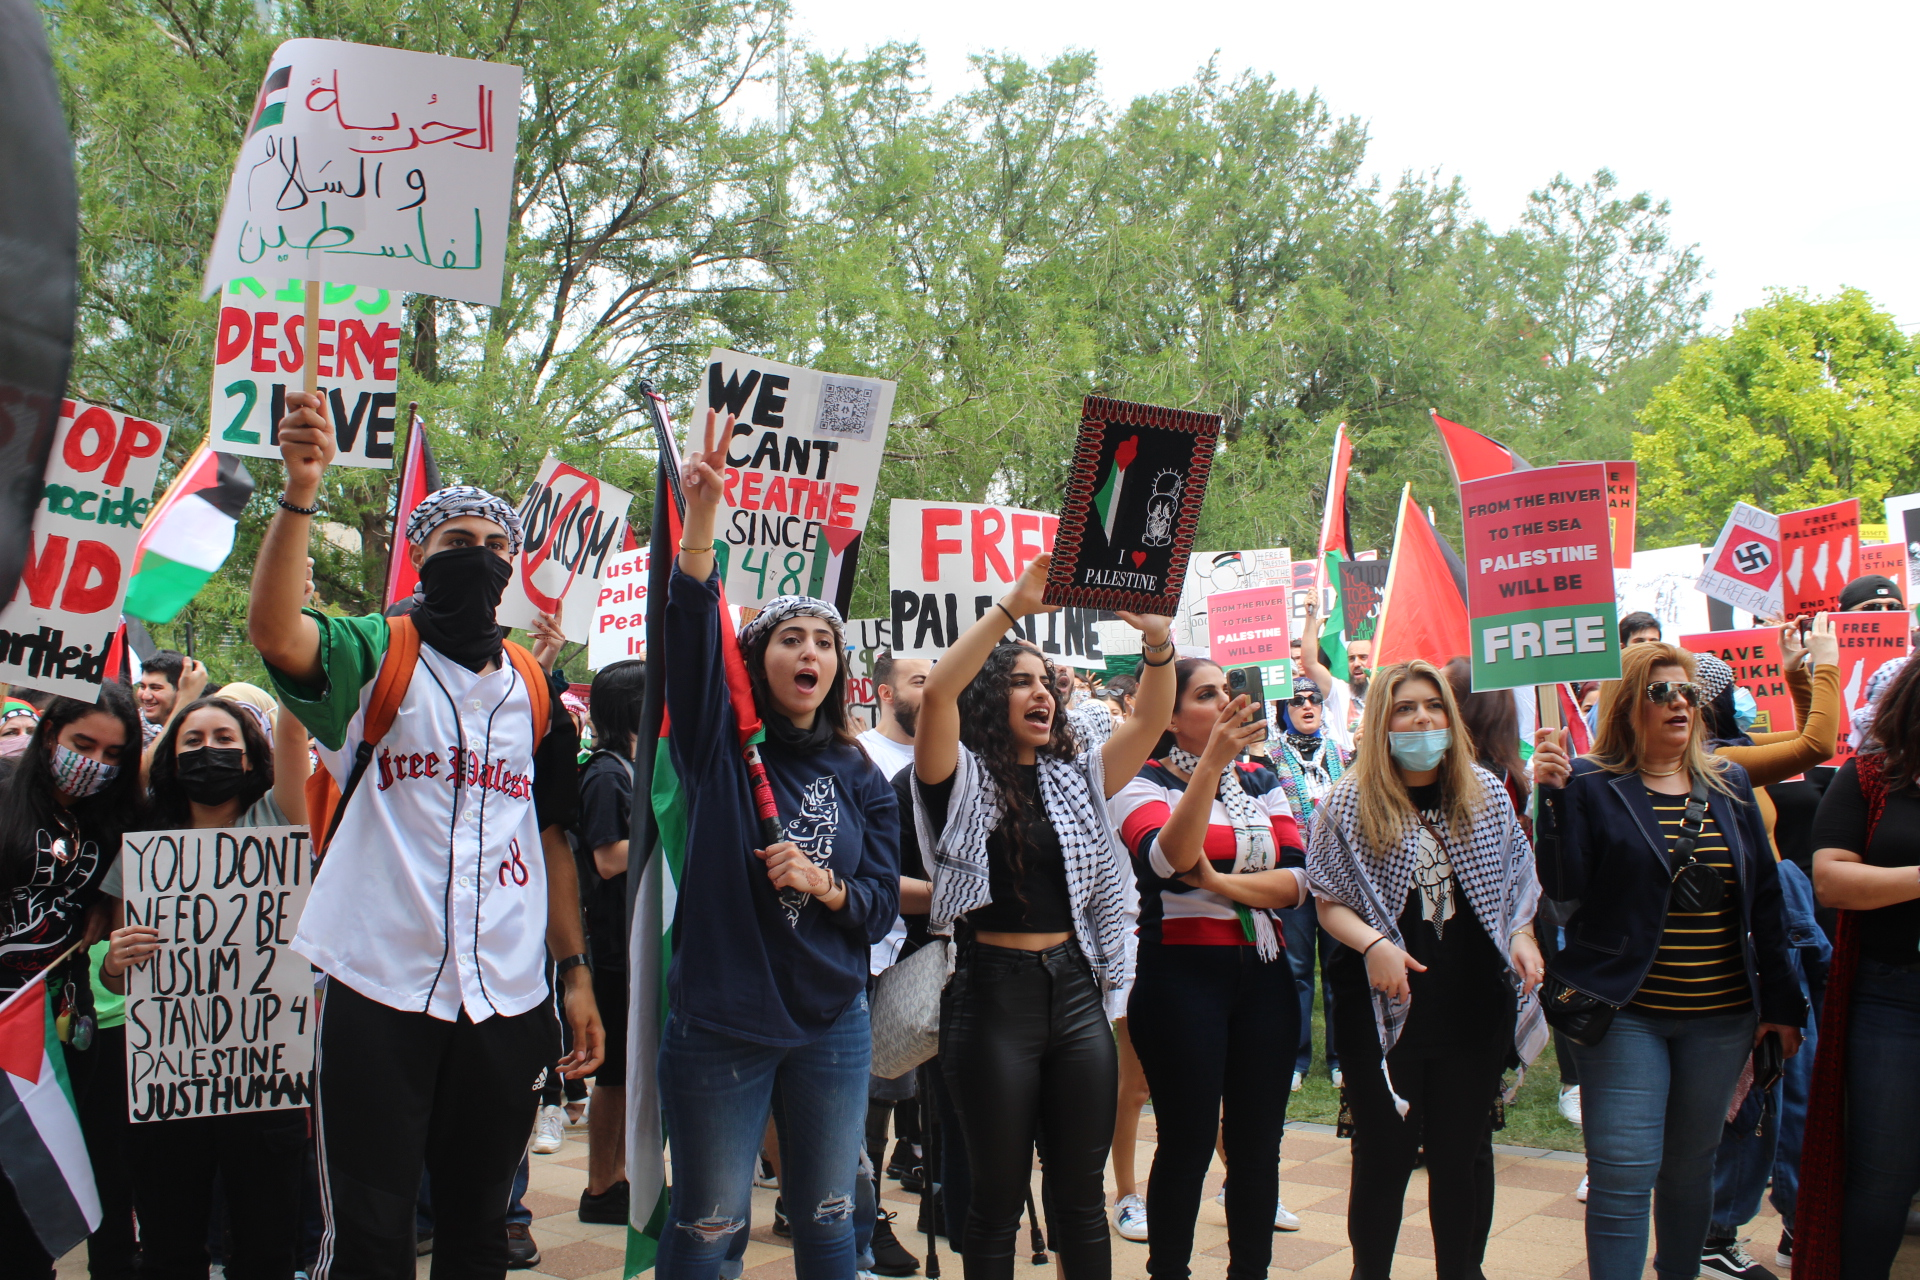 Youth and adults holding signs in support of Palestine